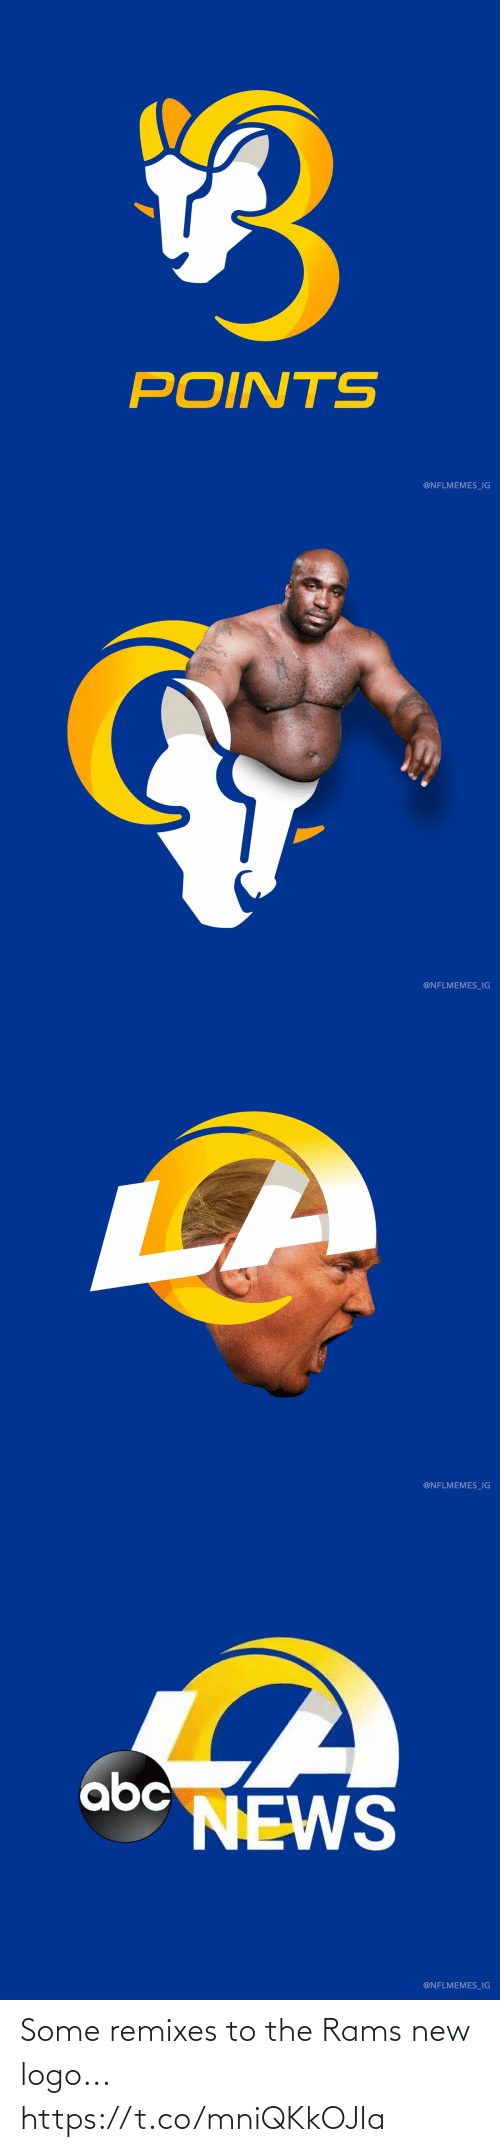 NFL: Some remixes to the Rams new logo... https://t.co/mniQKkOJIa